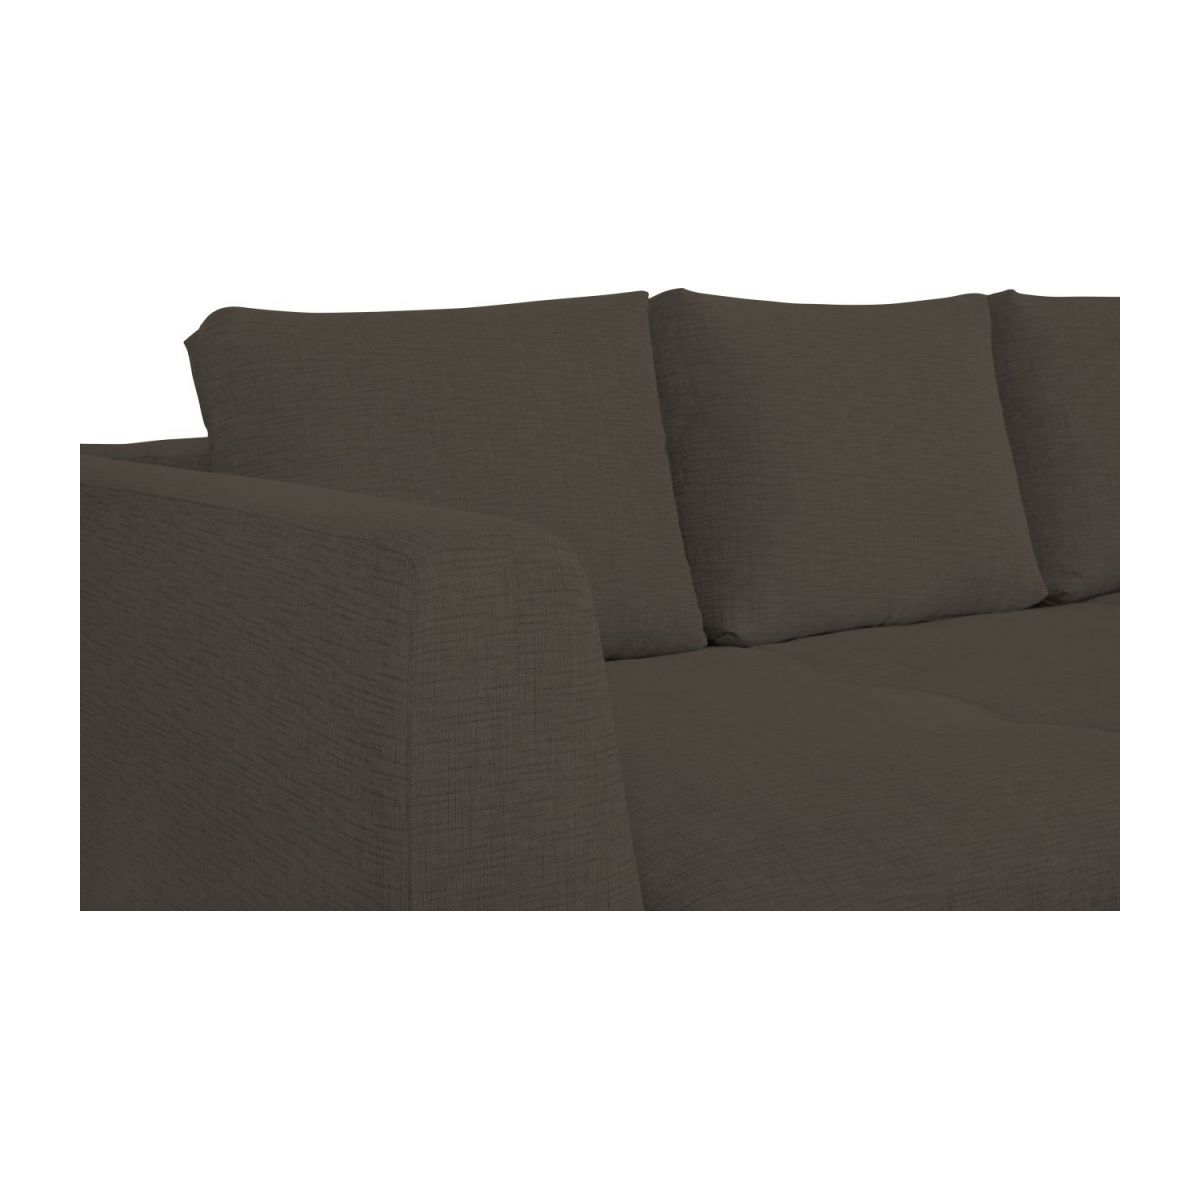 3 seater sofa in Ancio fabric, river rock n°8